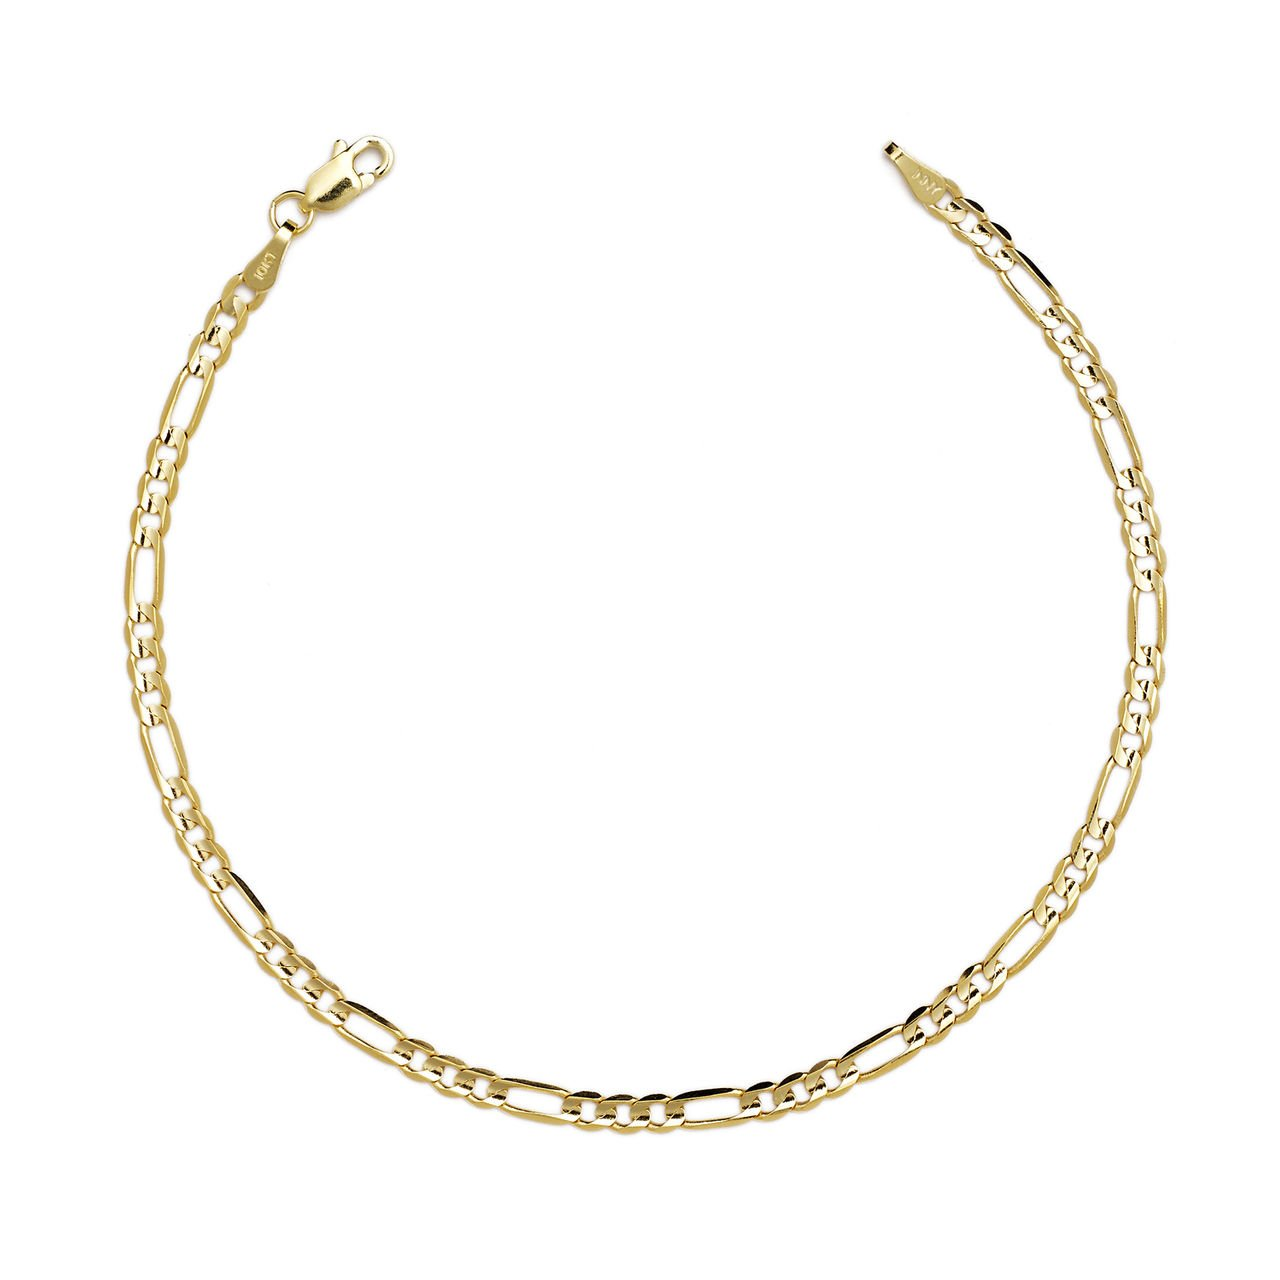 9 Inch 14k Yellow Gold Hollow Figaro Chain Bracelet and Anklet, 0.13 Inch (3.2mm)